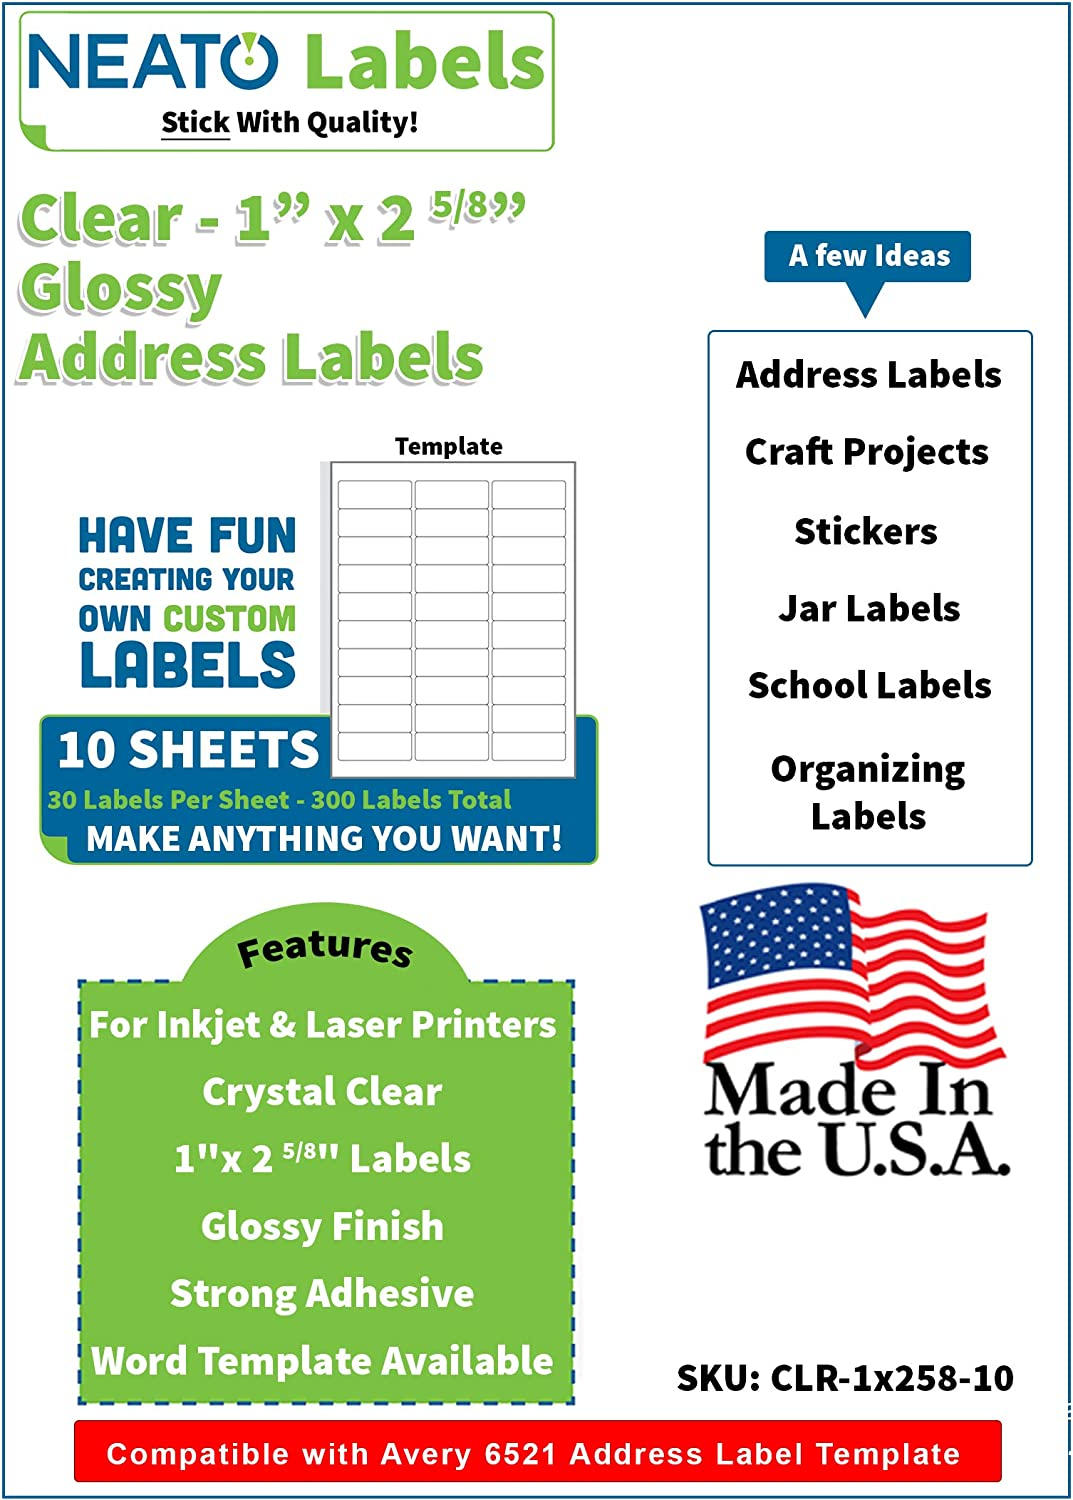 Clear Address Labels - Printable Glossy 1 x 2 5/8 Label Used for Mailing & Organizing - 30 Per Sheet- 300 Total Tear Resistant Personalized Print Envelope Labels for Inkjet & Laser Printers